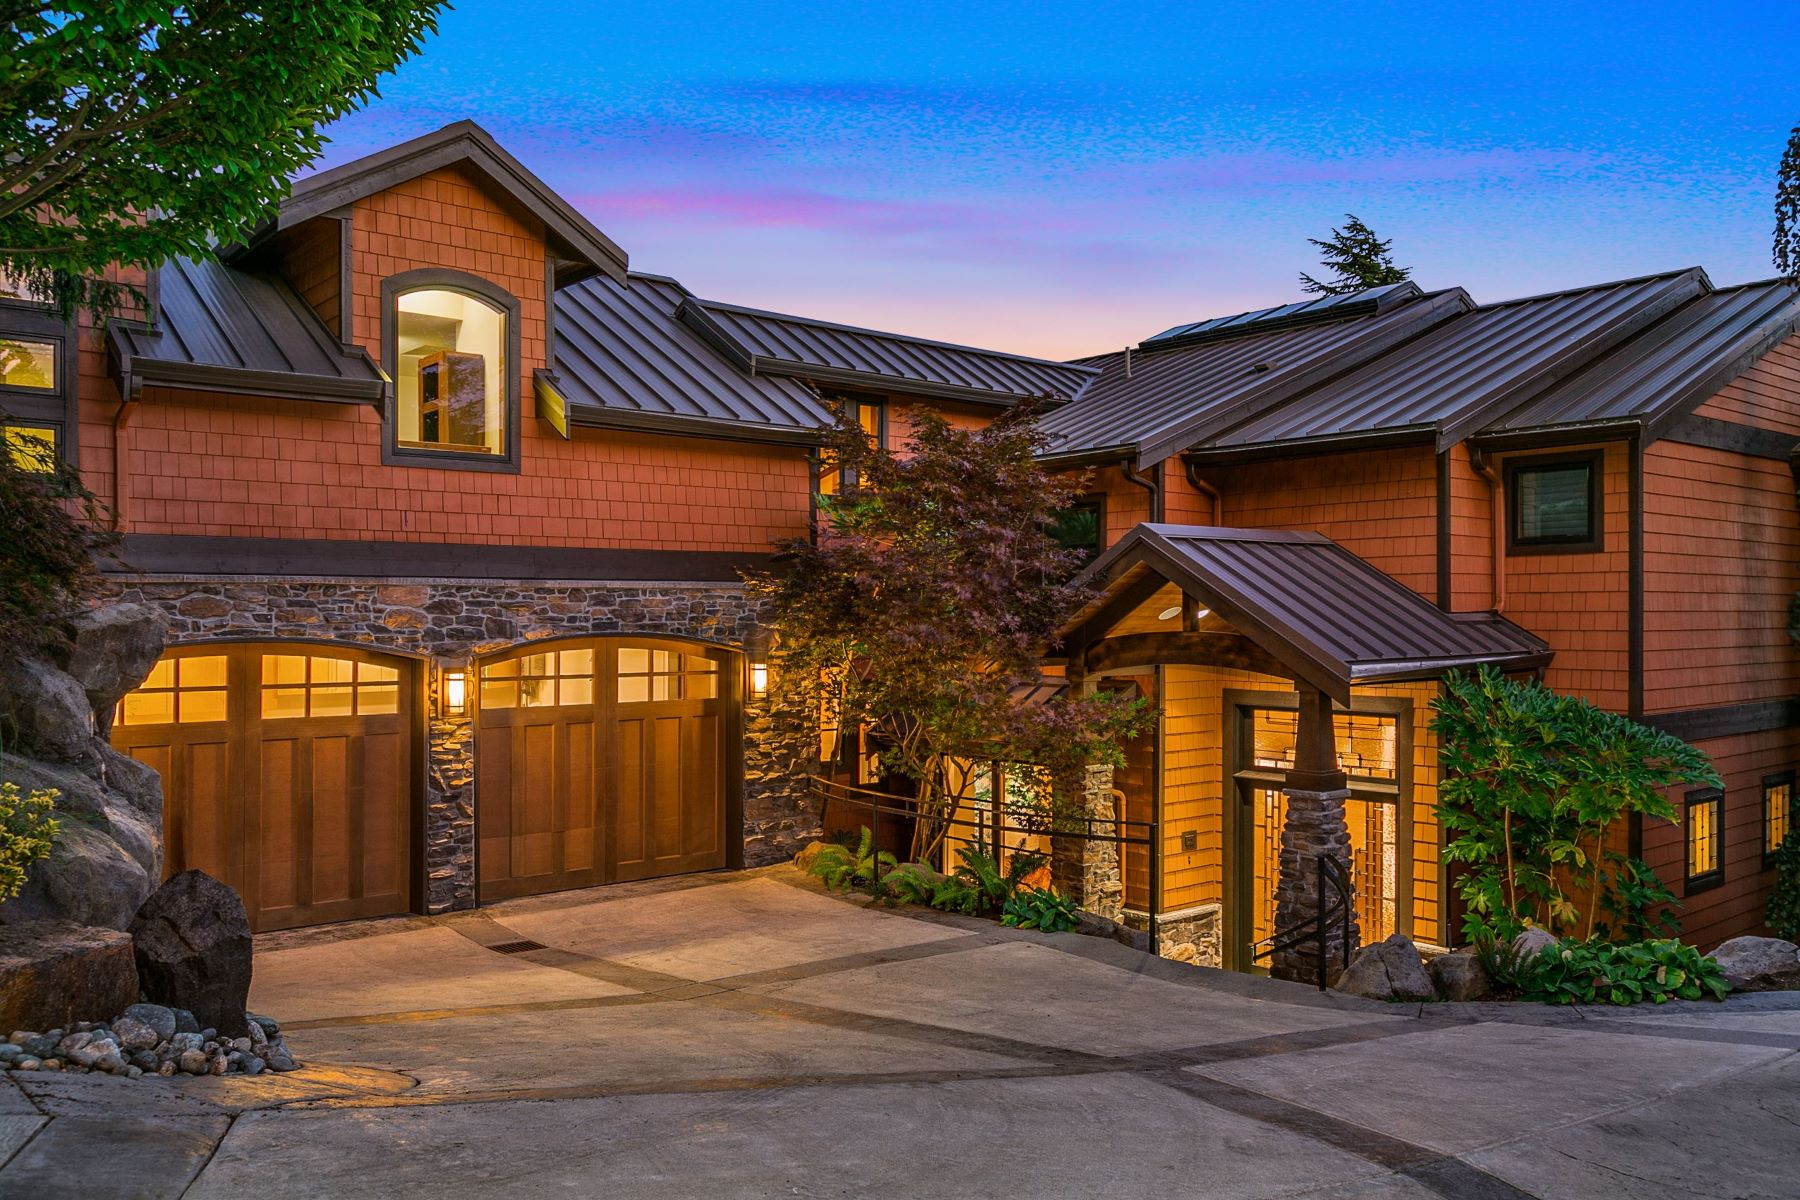 Single Family Homes for Sale at 8439 SE 87th St, Mercer Island, WA 98040 8439 SE 87th St Mercer Island, Washington 98040 United States